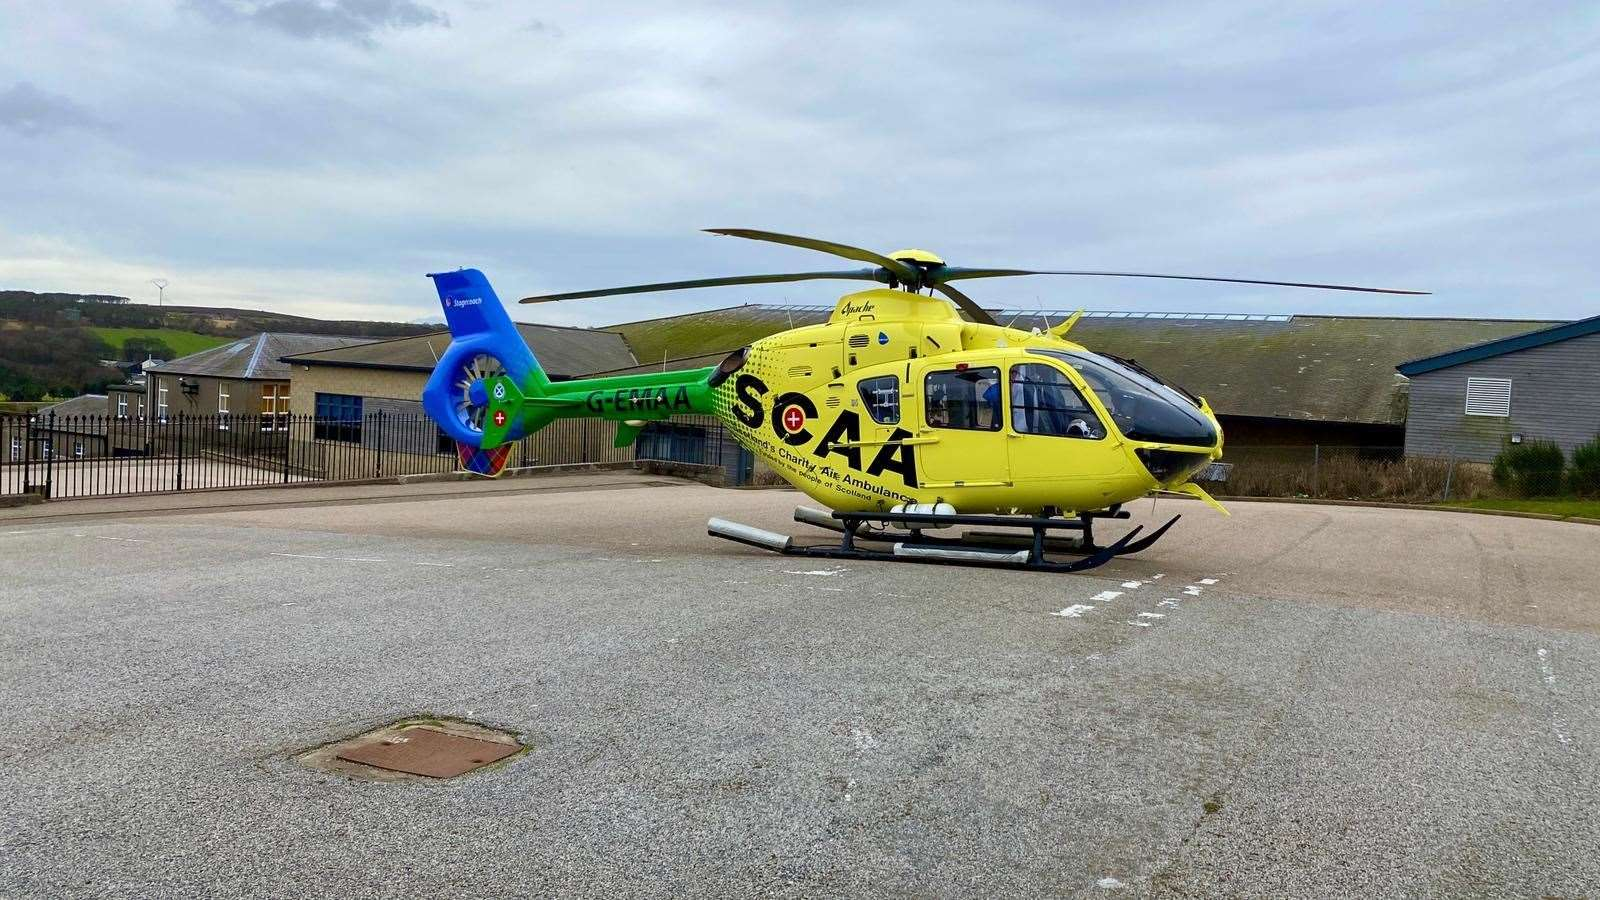 The Scottish Charity Air Ambulance's Helimed 79 landed within the grounds of Banff Primary School around midday on Thursday.